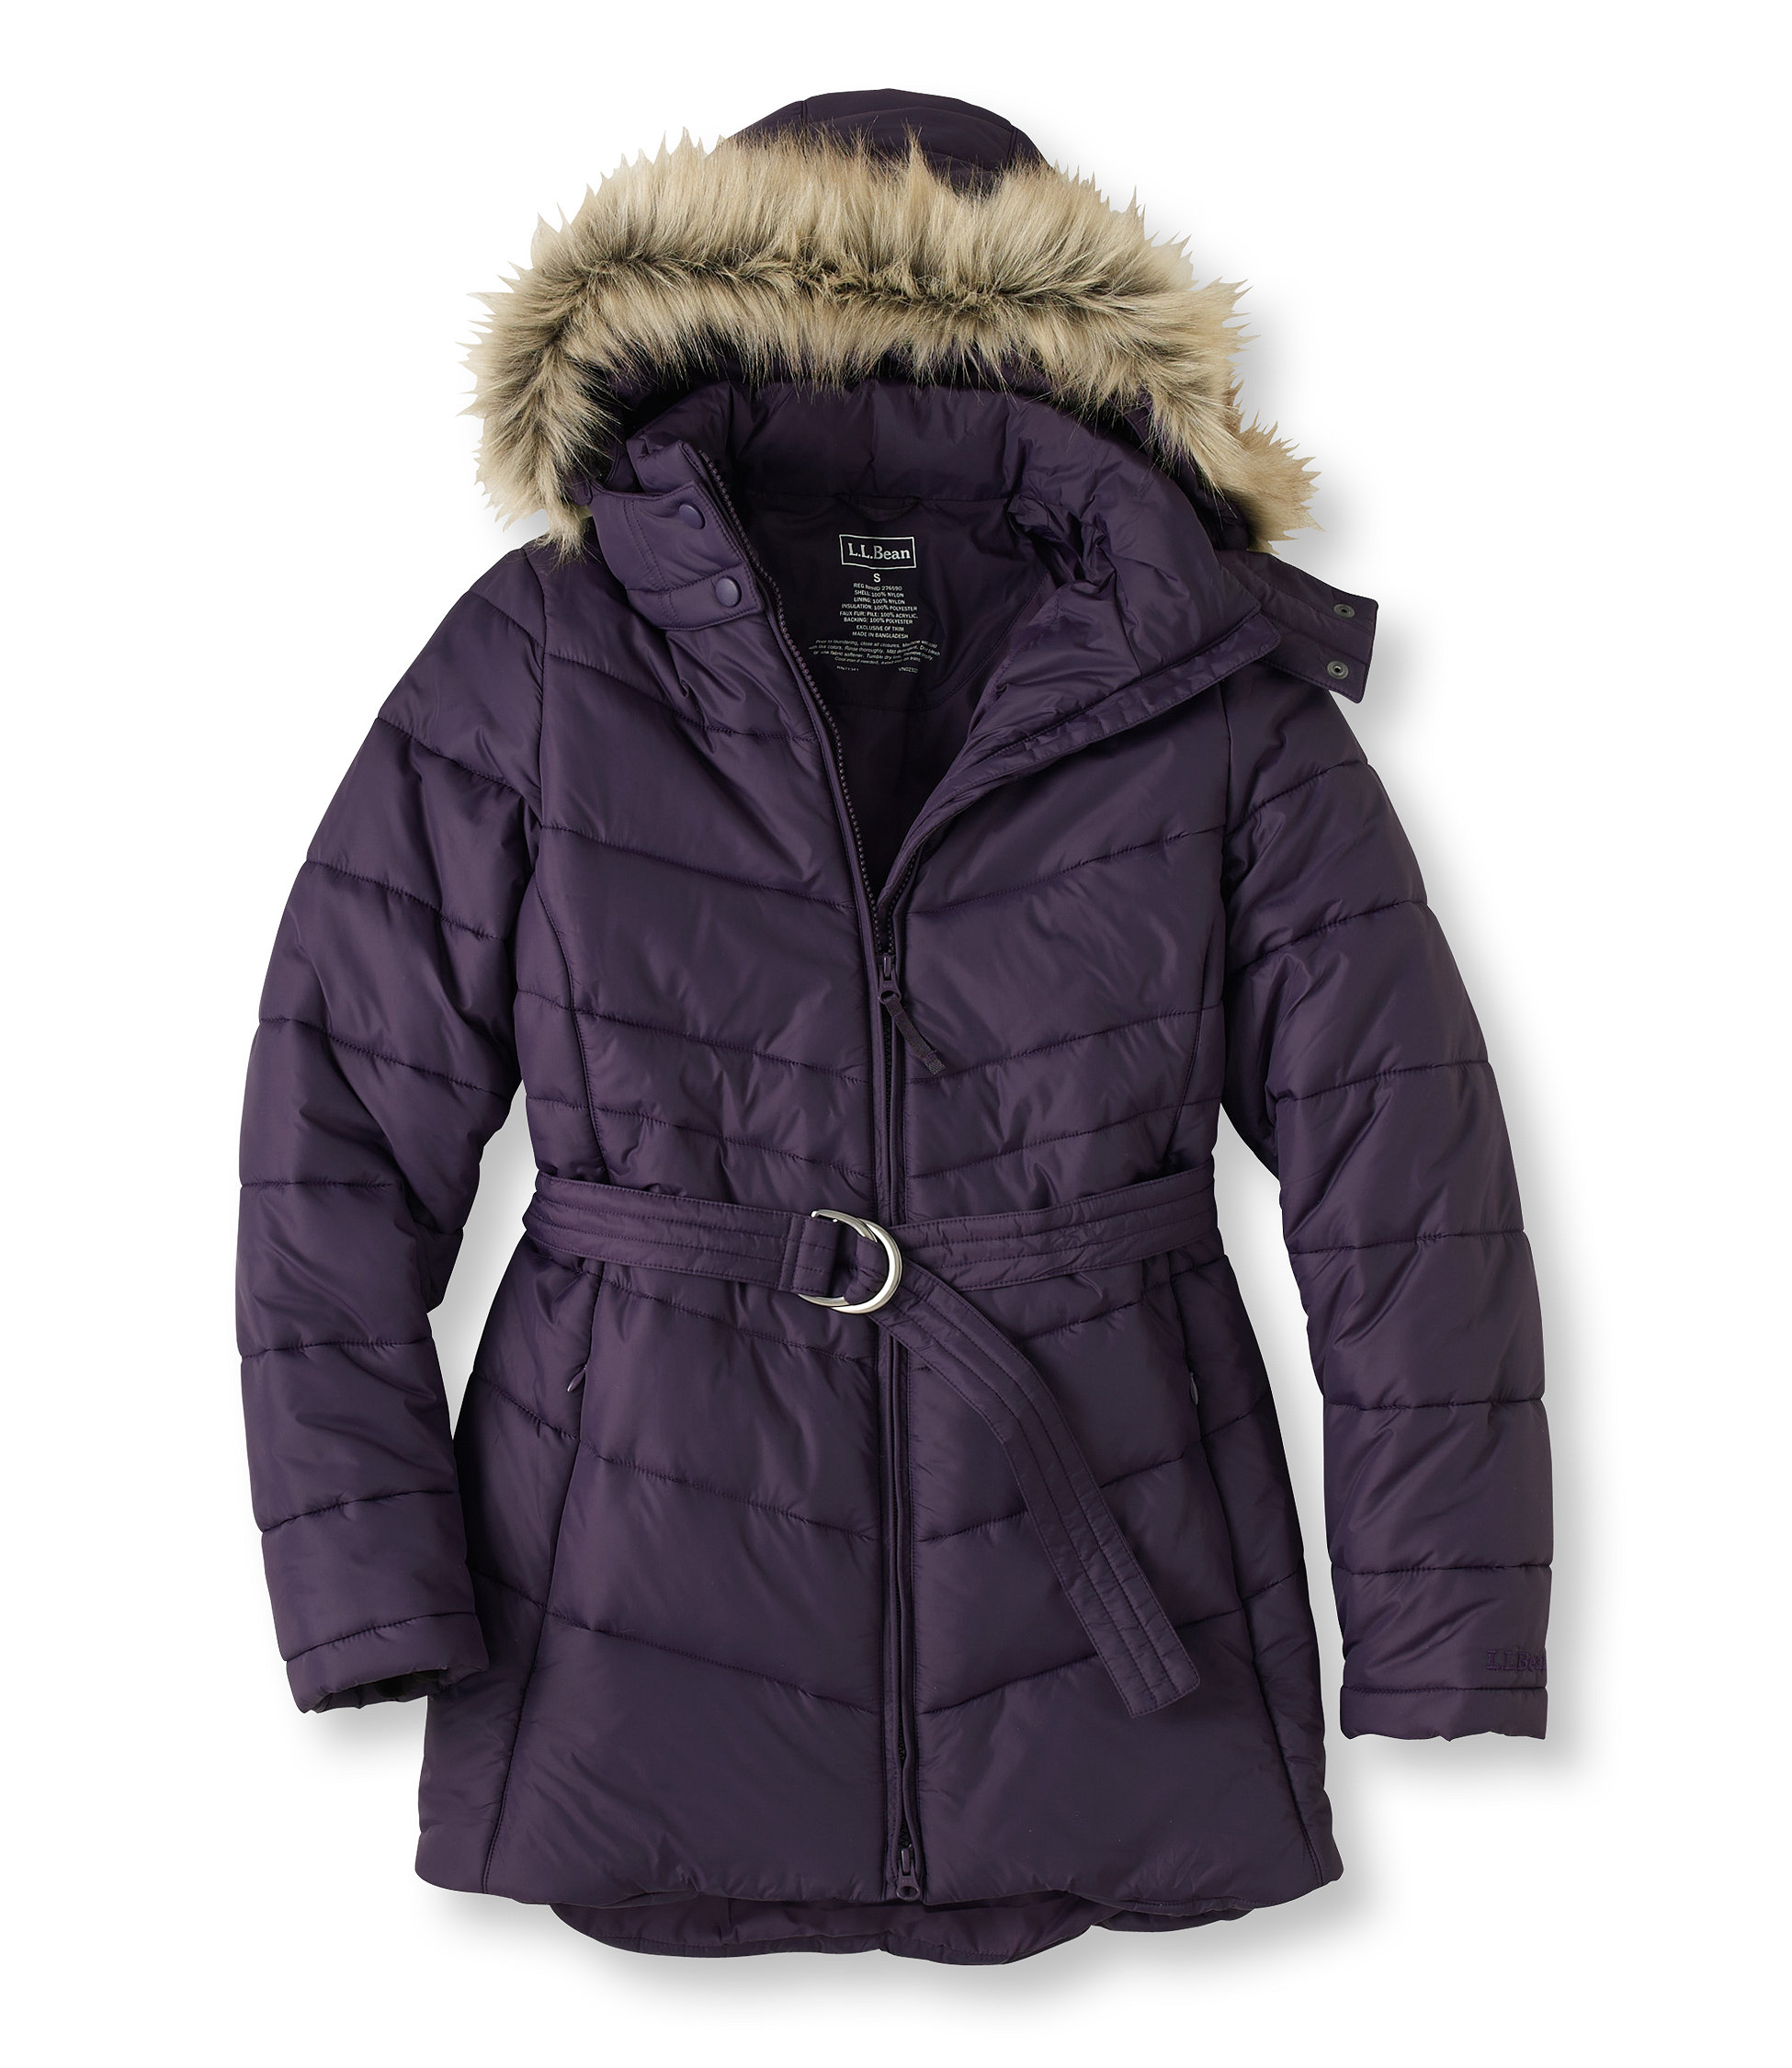 L.L.Bean Warm and Light Belted Coat